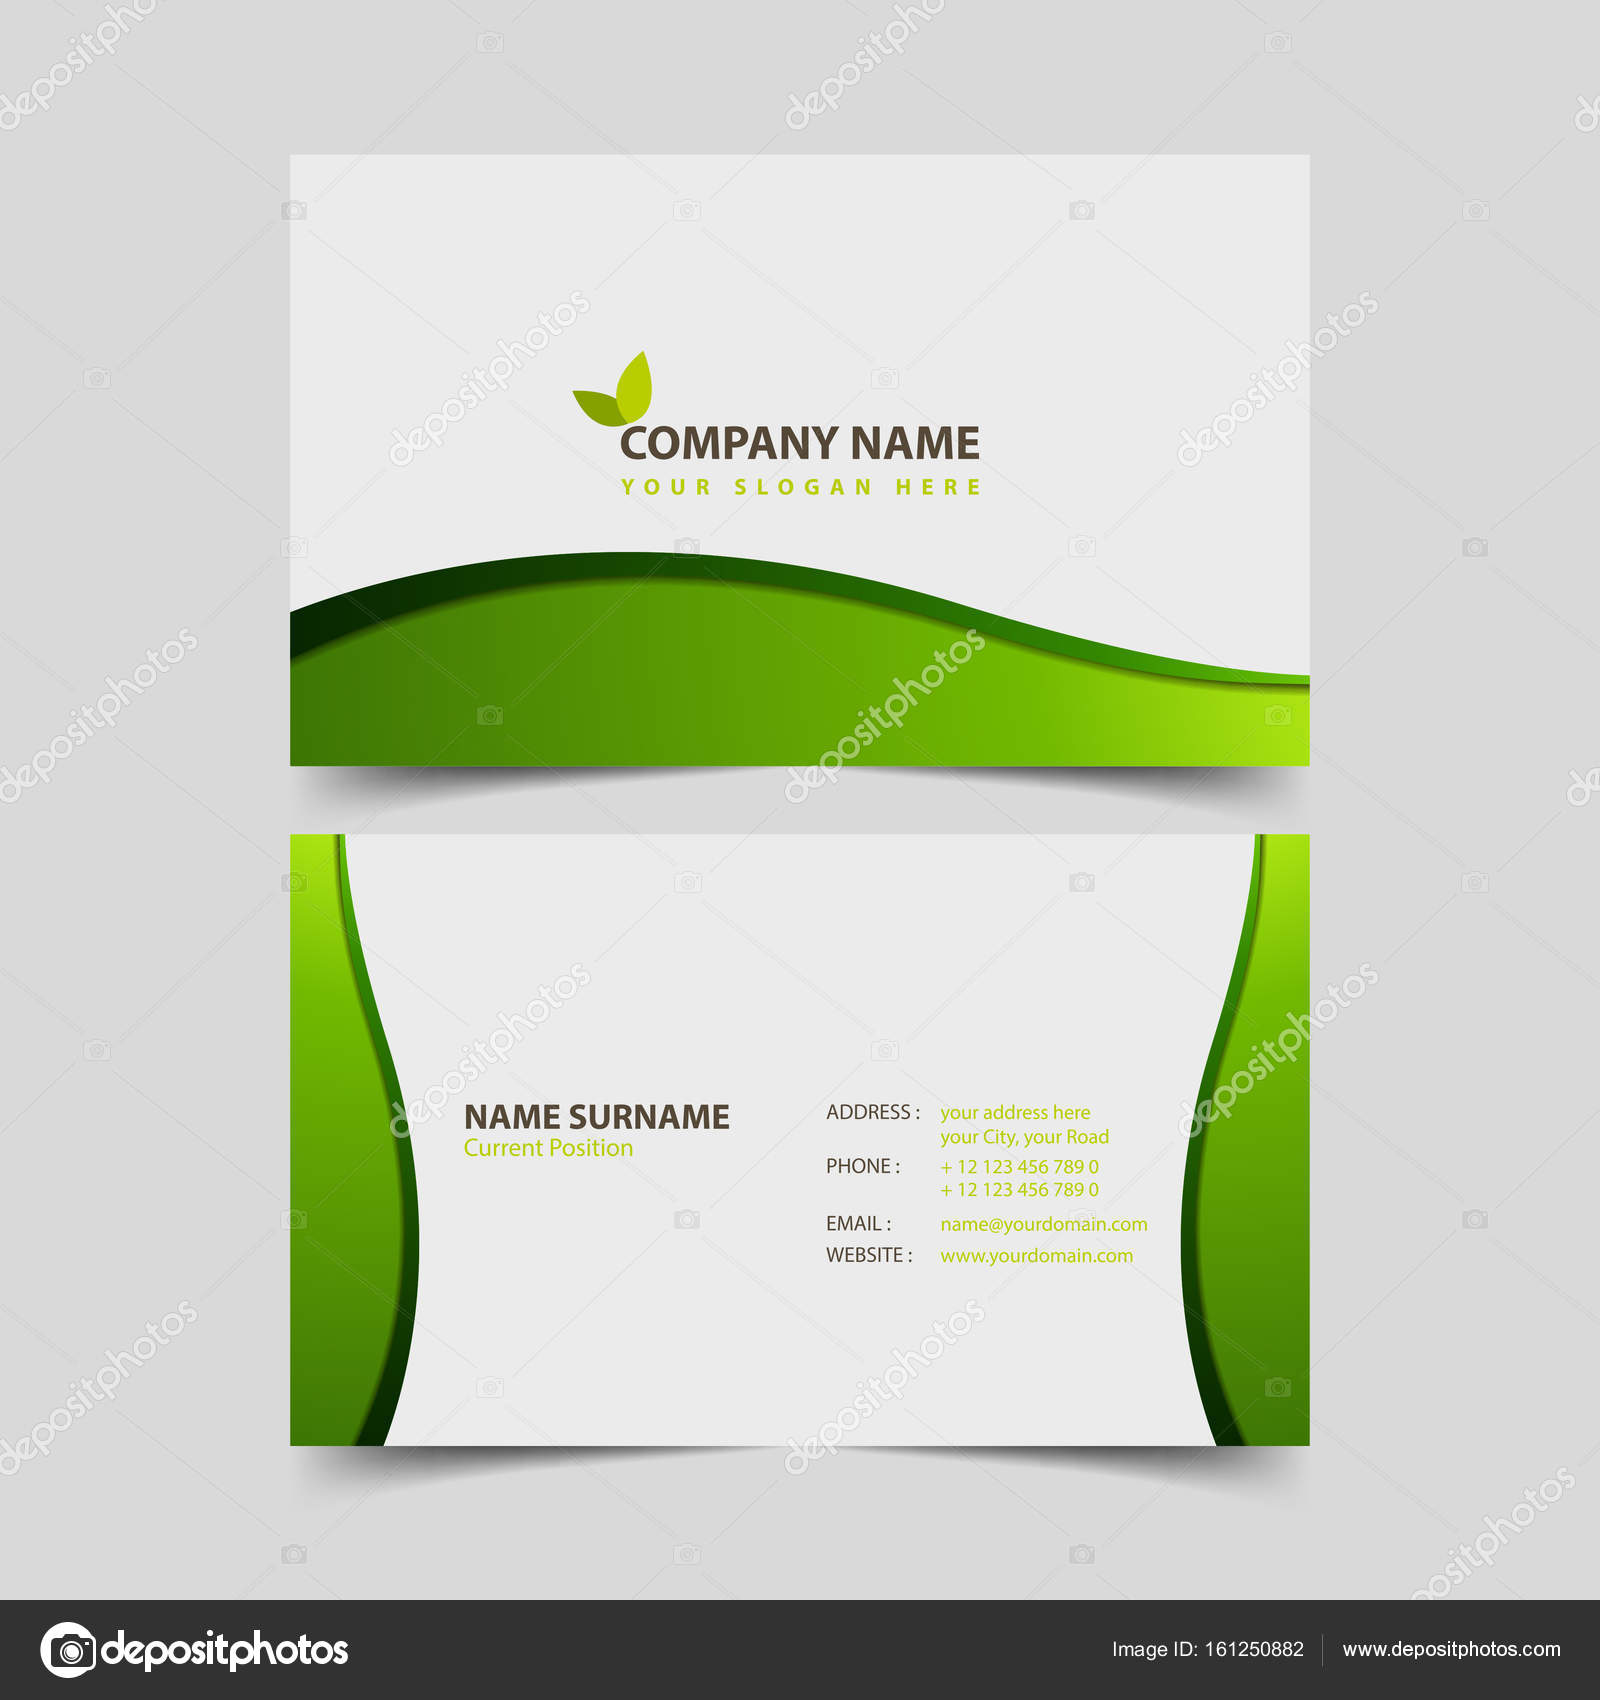 Eco friendly business card design template stock vector eco friendly business card design template stock vector colourmoves